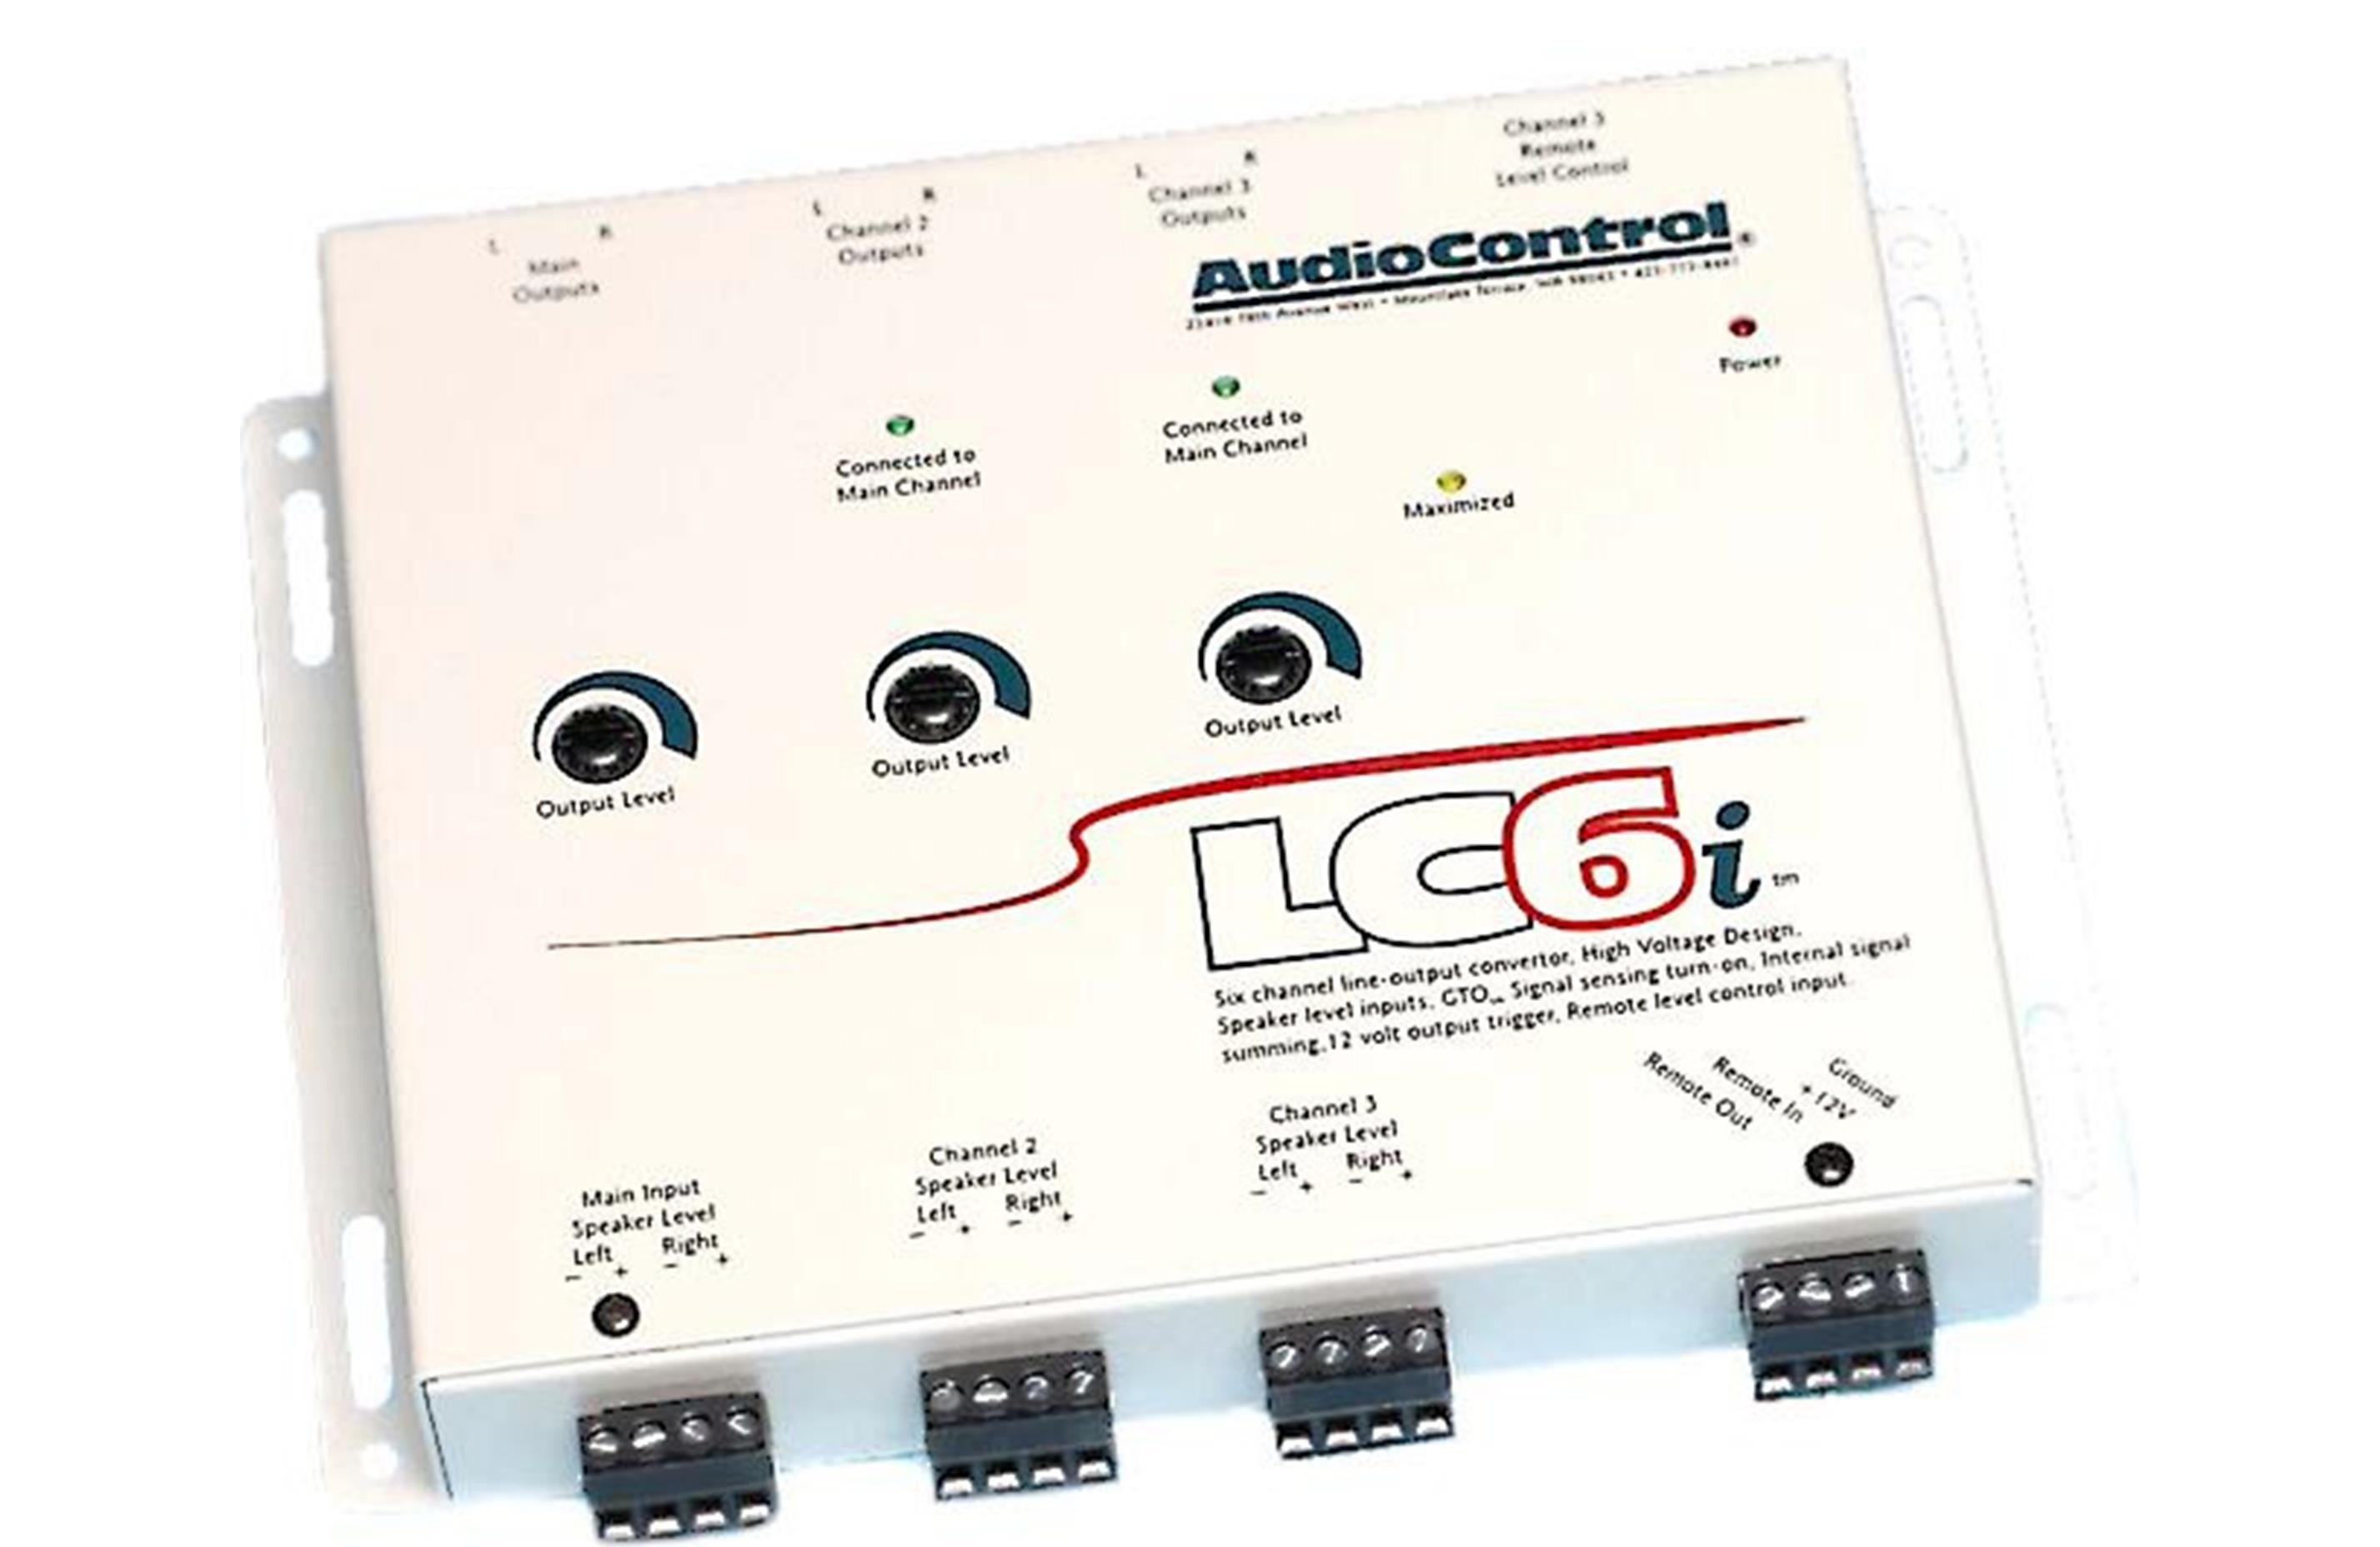 Audiocontrol LC6i (Sierra White)